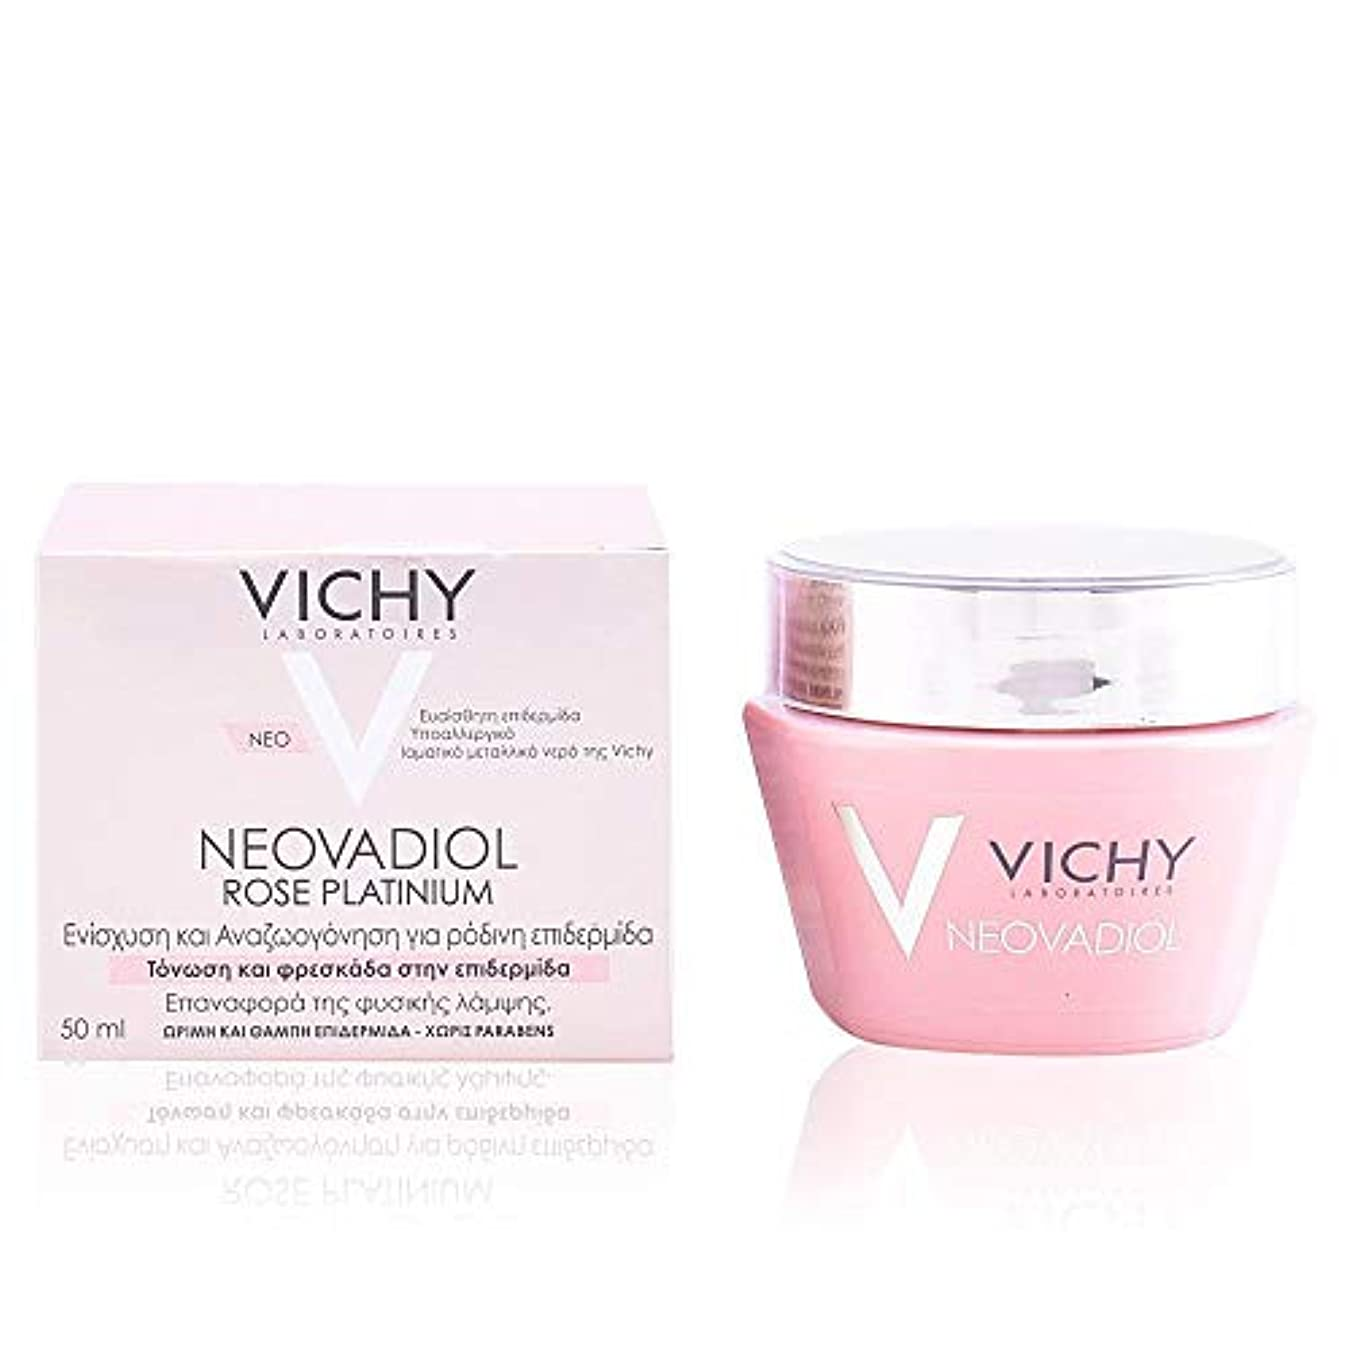 Vichy Neovadiol Rose Platinium Cream 50ml [並行輸入品]